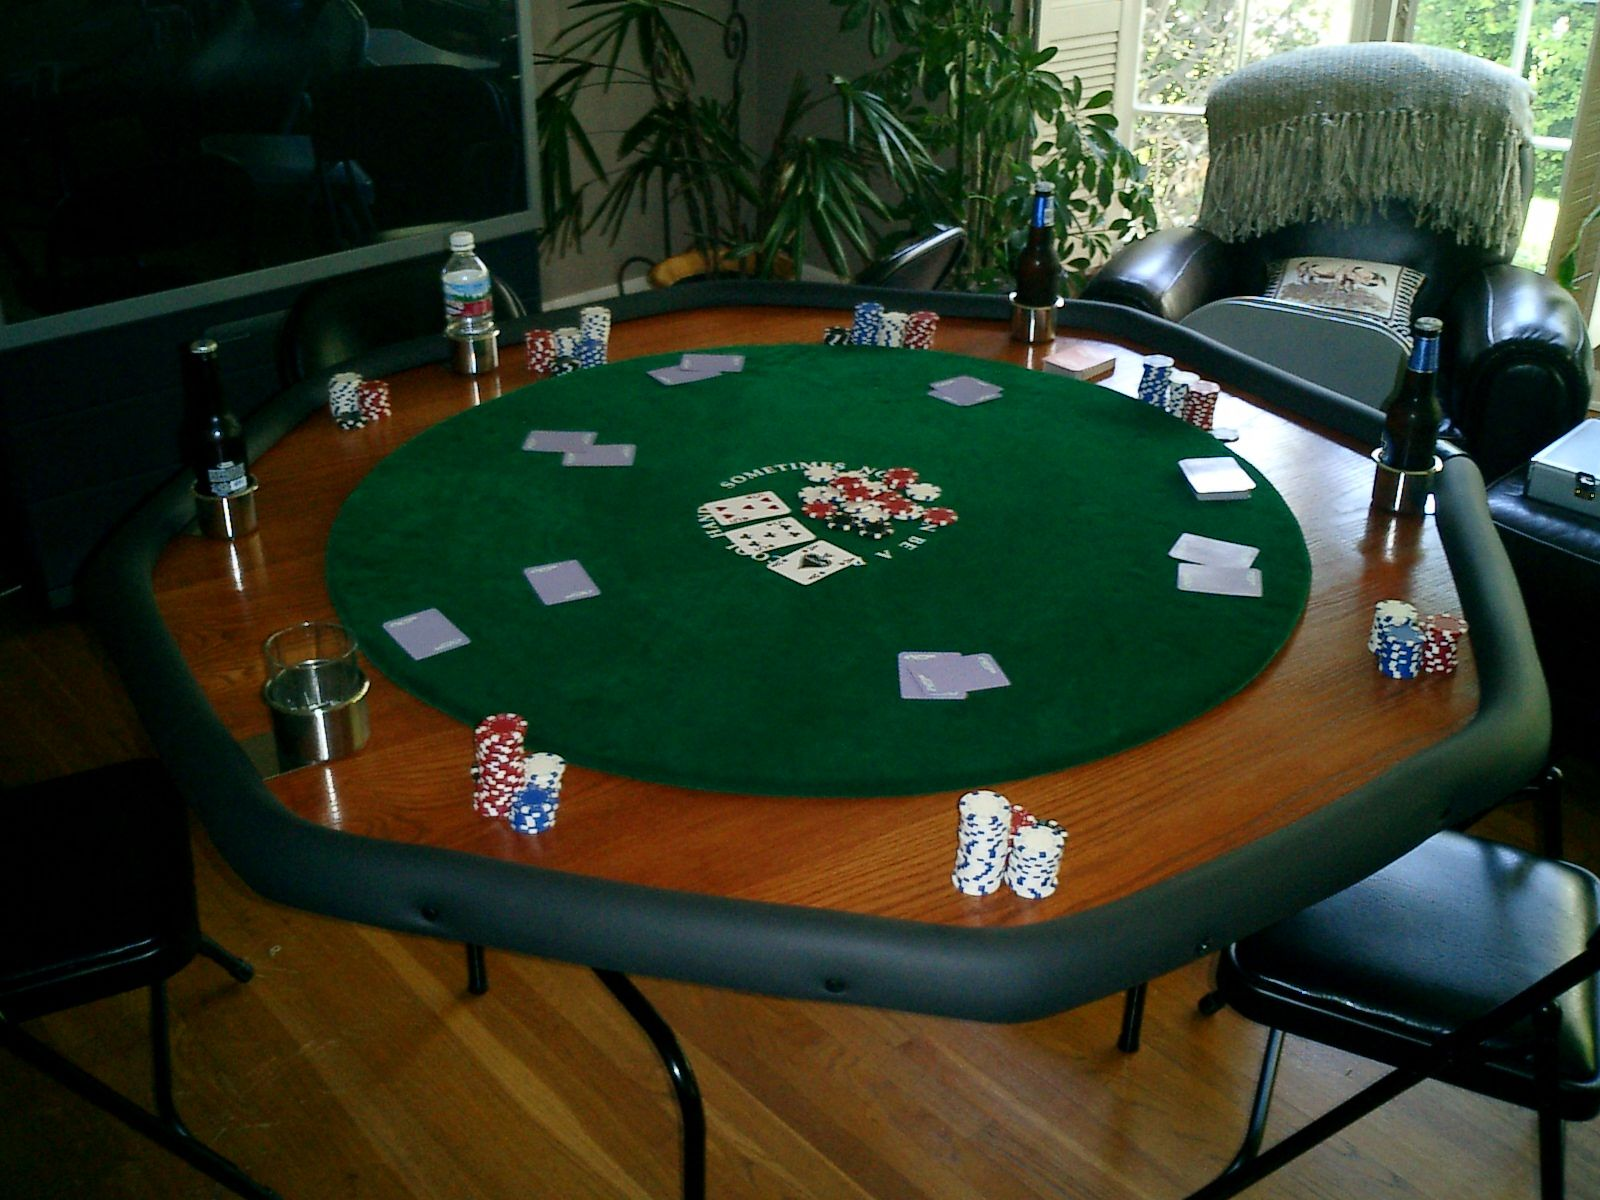 DIY your own poker table, this wouldn't be too hard either